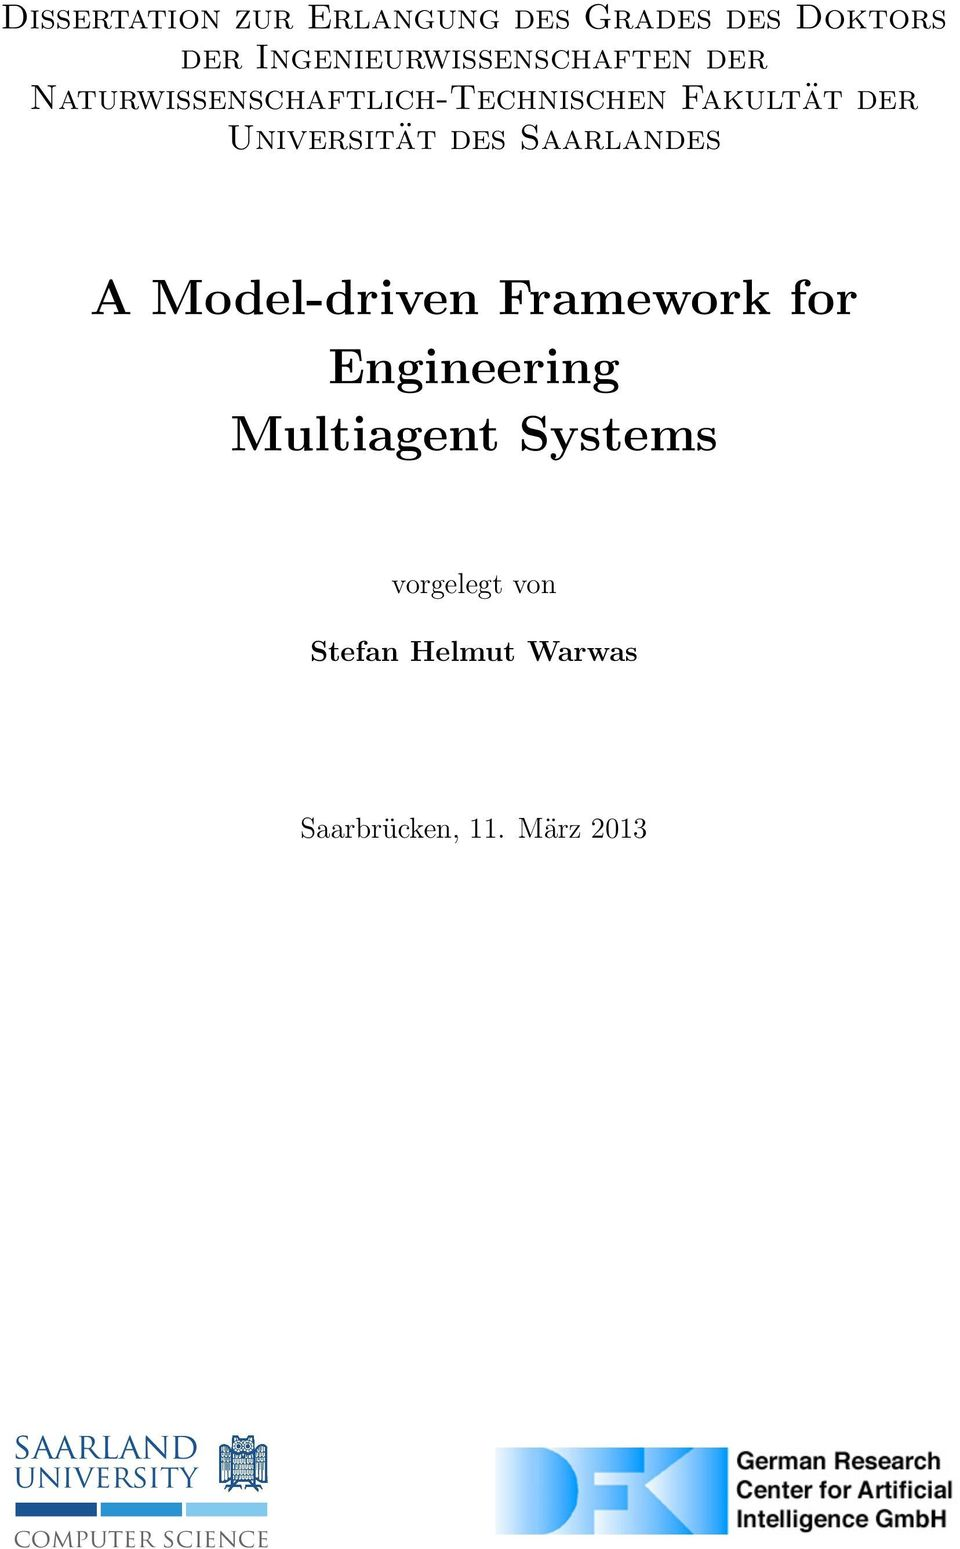 A Model-driven Framework for Engineering Multiagent Systems vorgelegt von